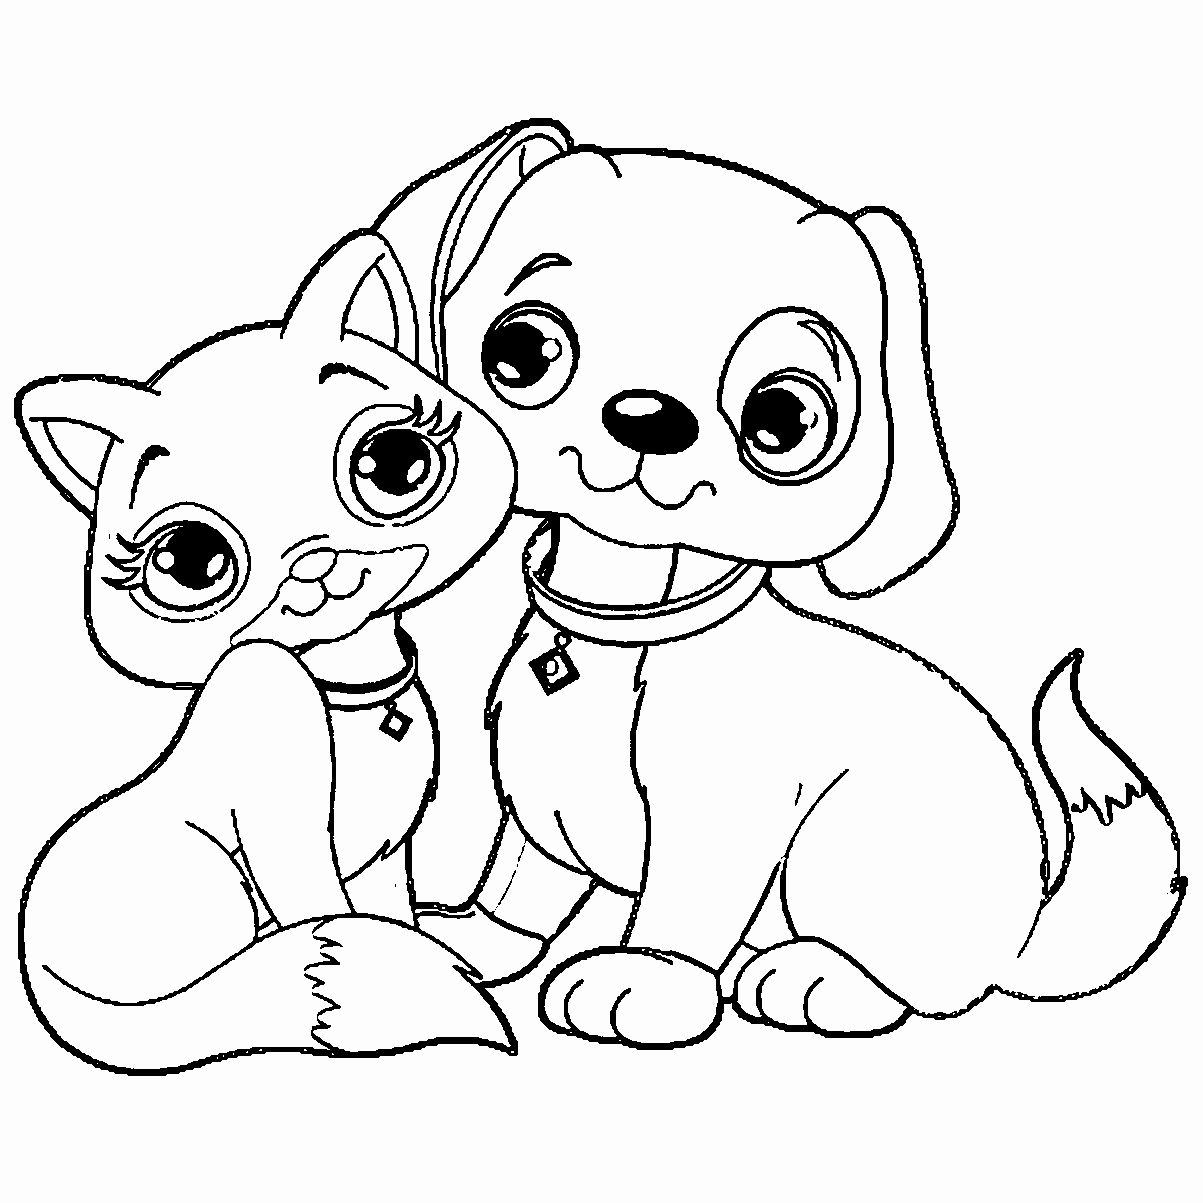 Dog Coloring Pages Unique Coloring Books Coloring Dog